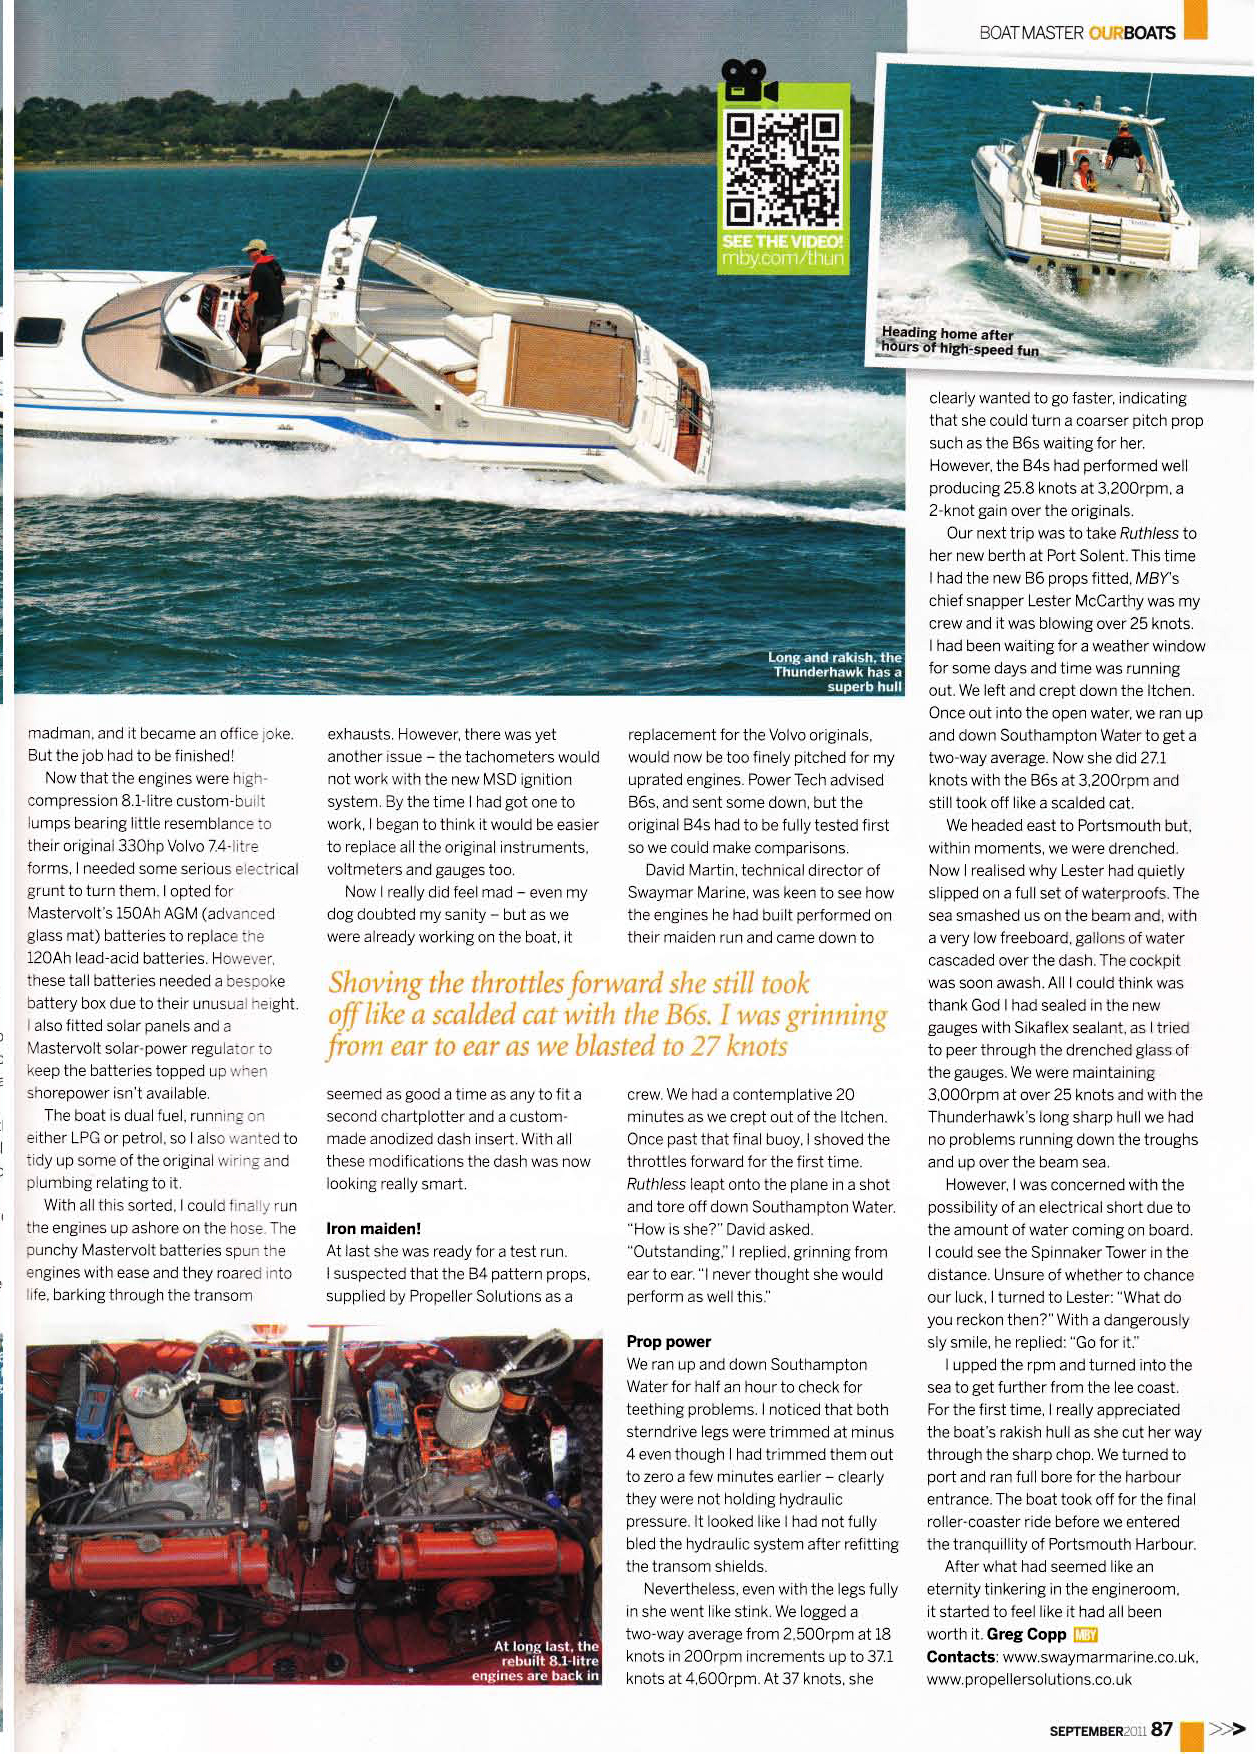 Projects | Projects undergone by Swaymar Marine